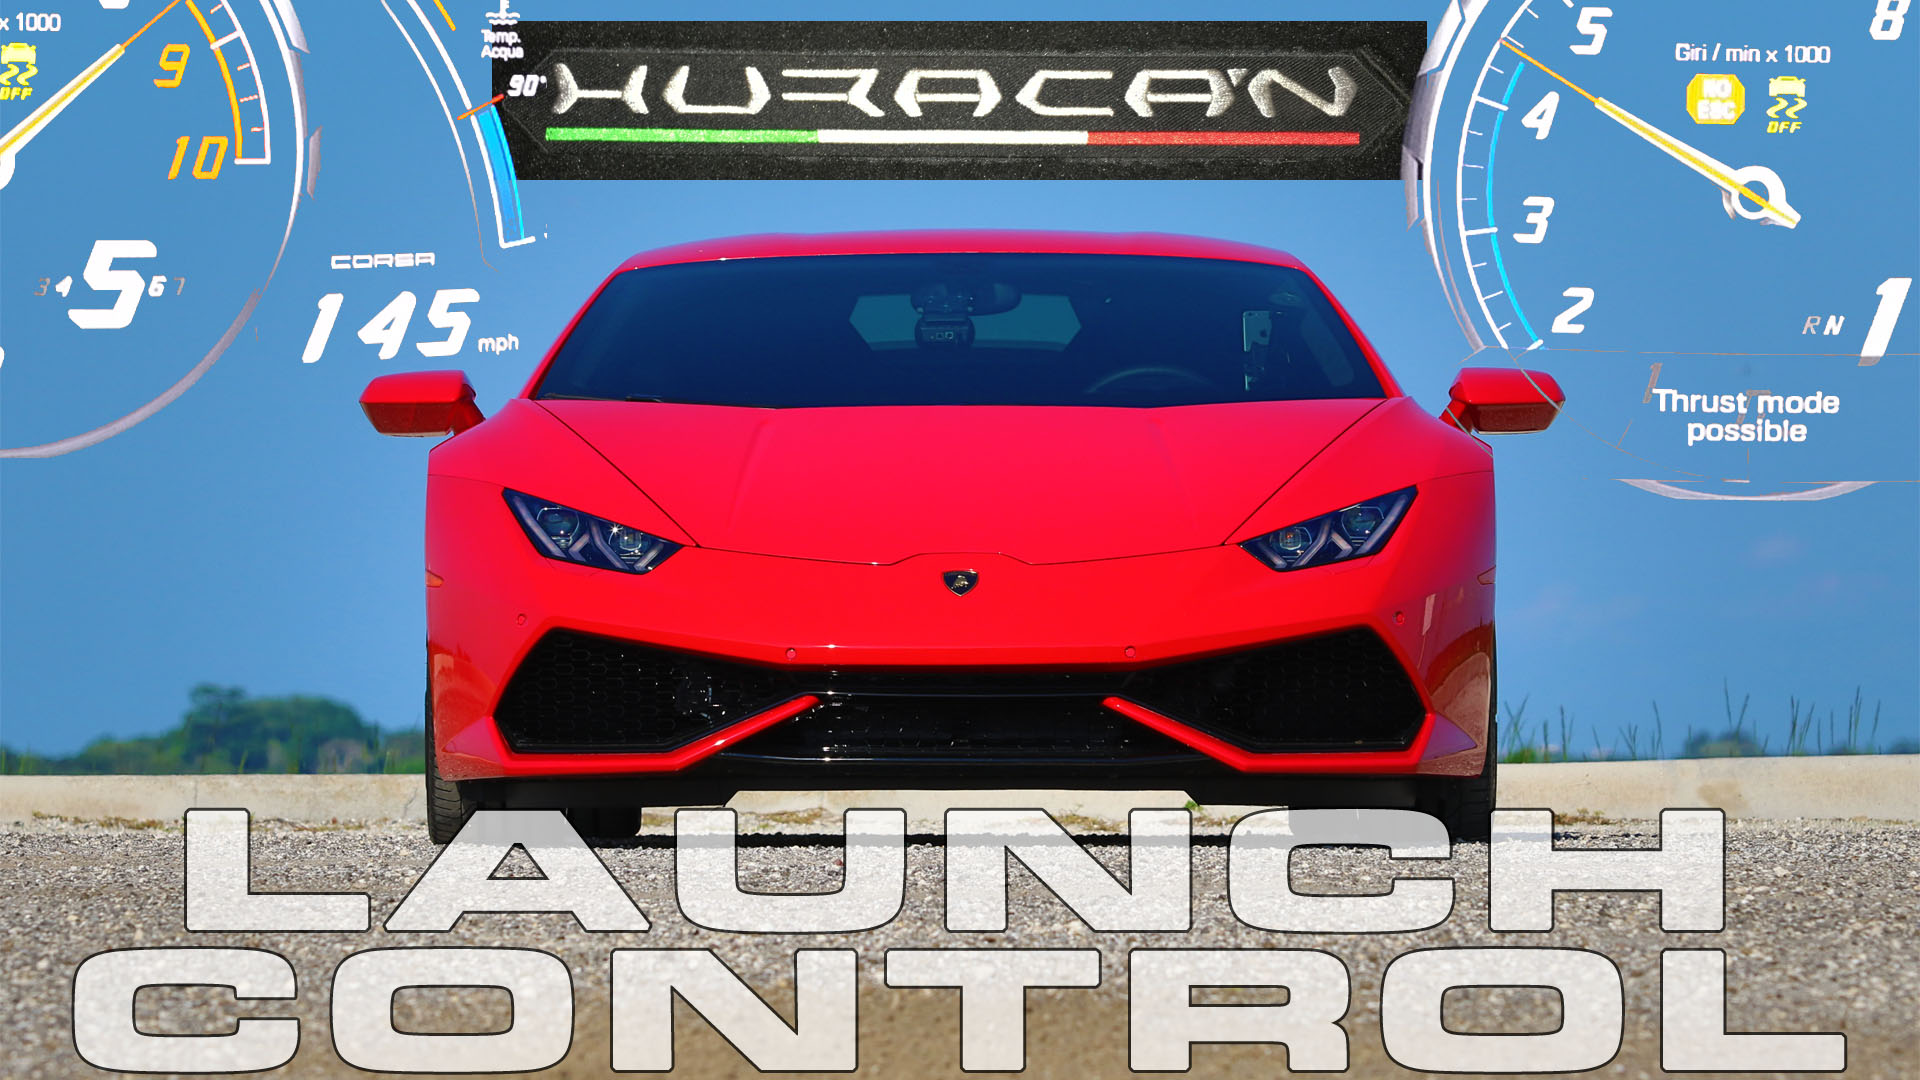 lamborghini-huracan-launch-control-thrust-mode